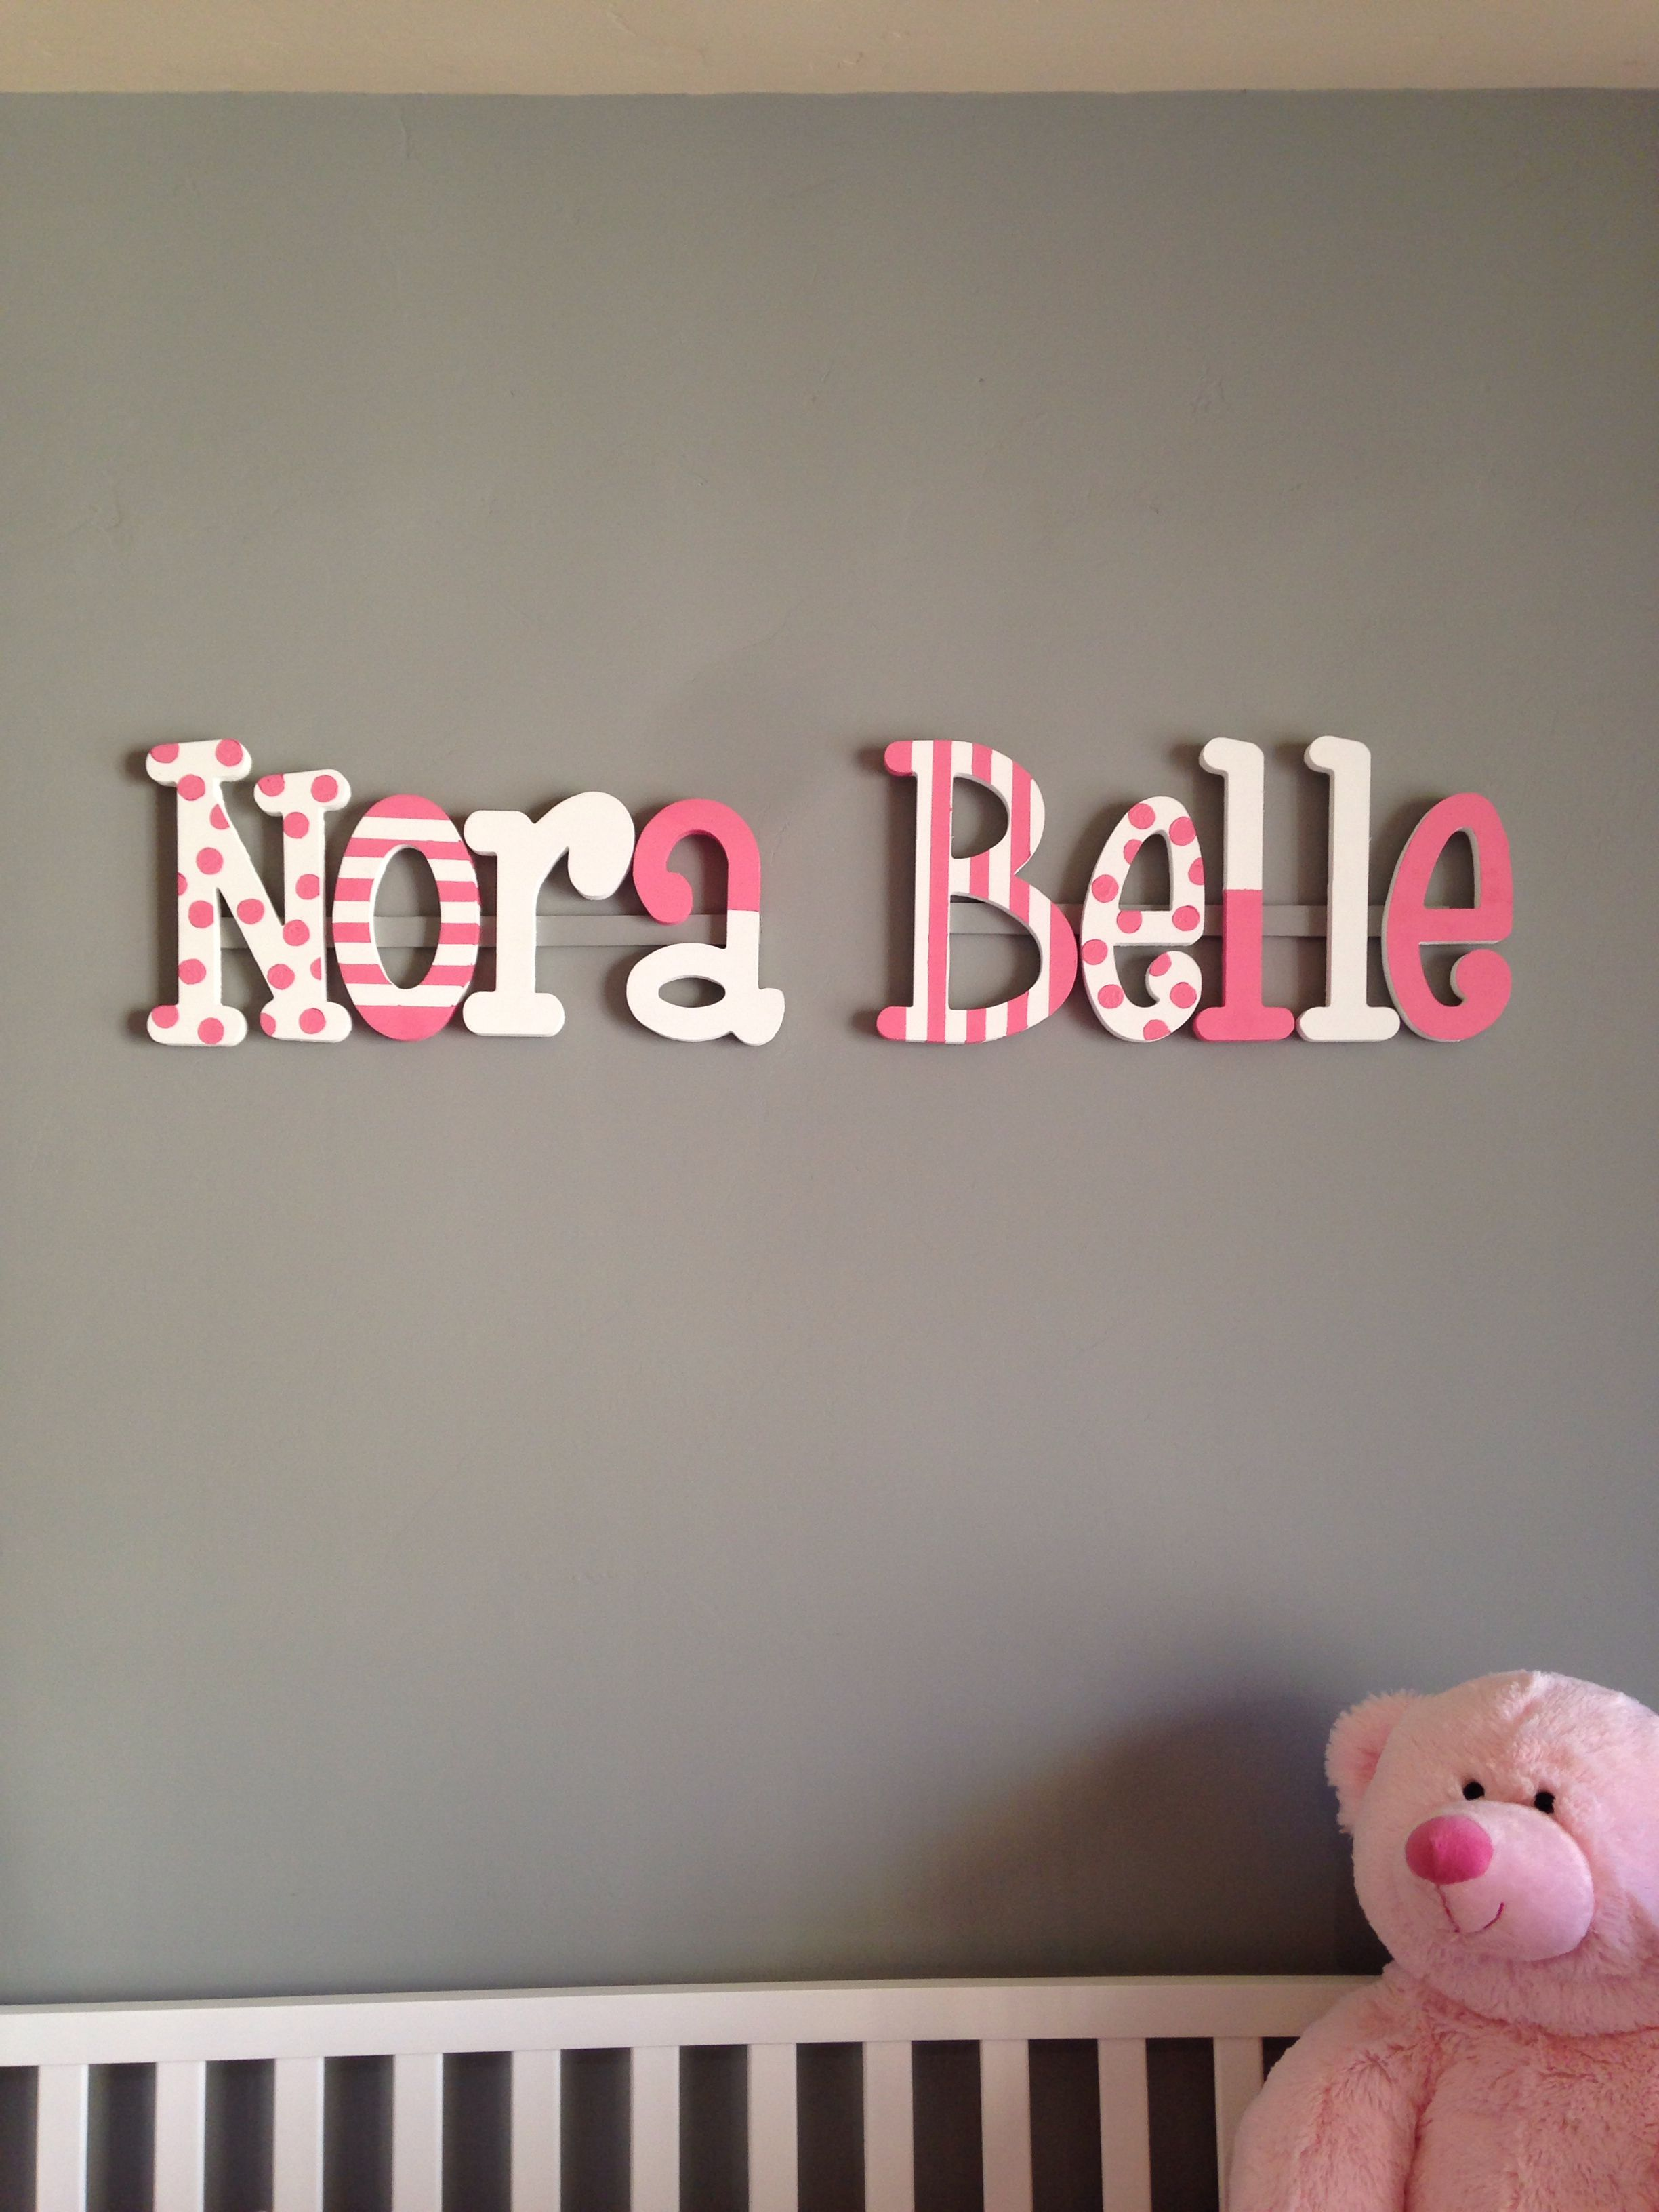 Diy Painted Wooden Letters Painting Wooden Letters Painted Wood